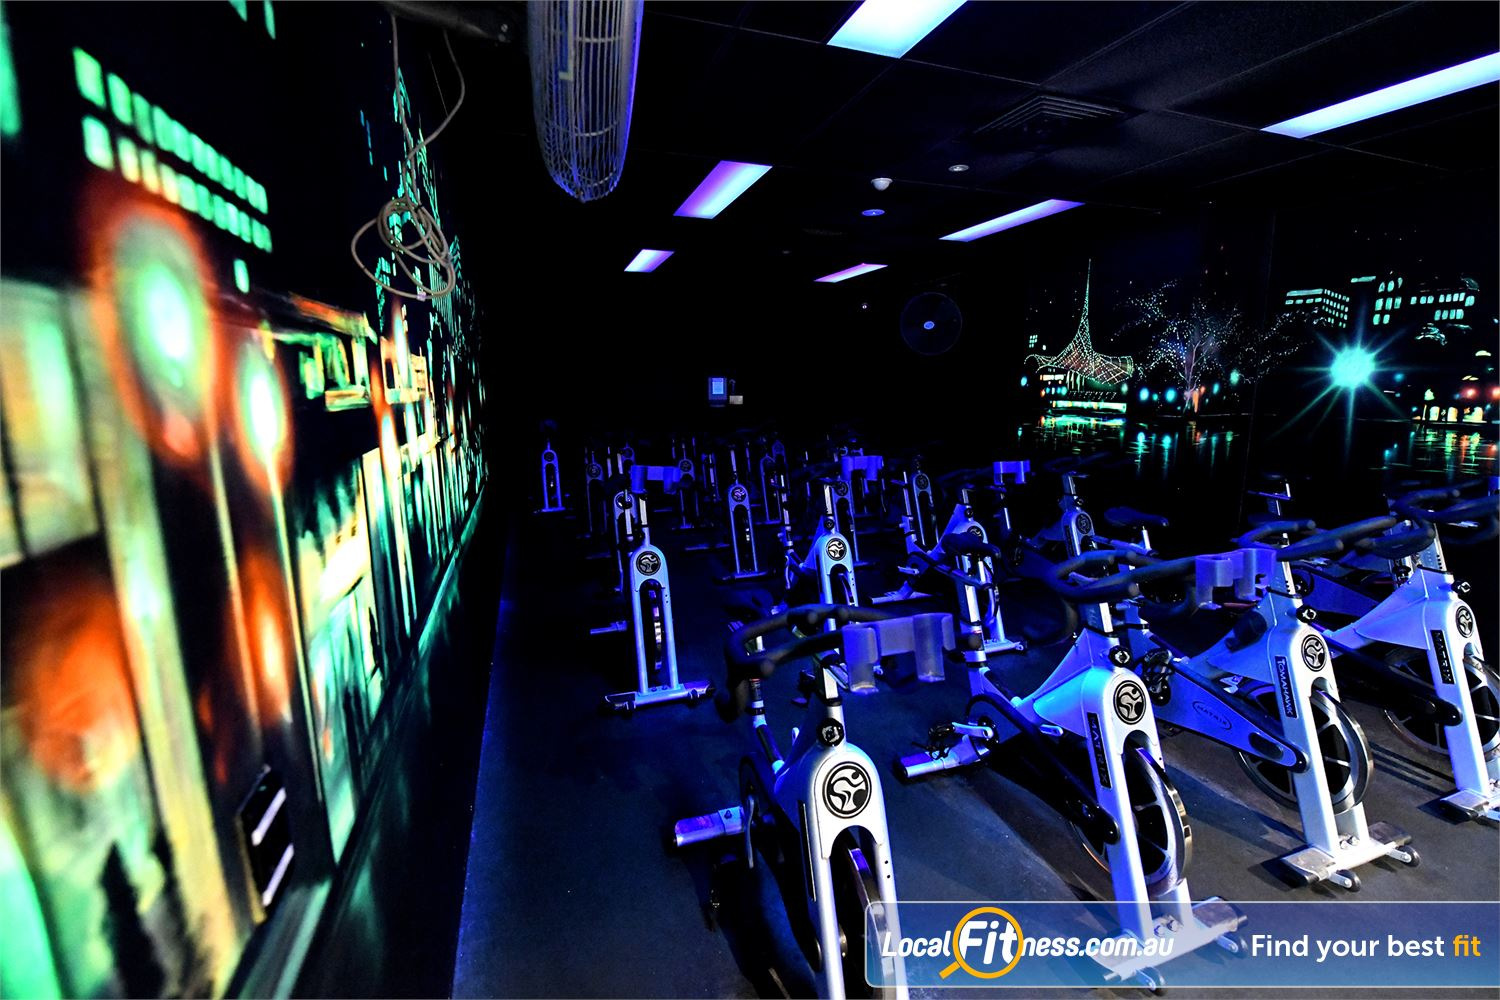 Goodlife Health Clubs Near Newtown Join our heart racing Geelong spin classes.